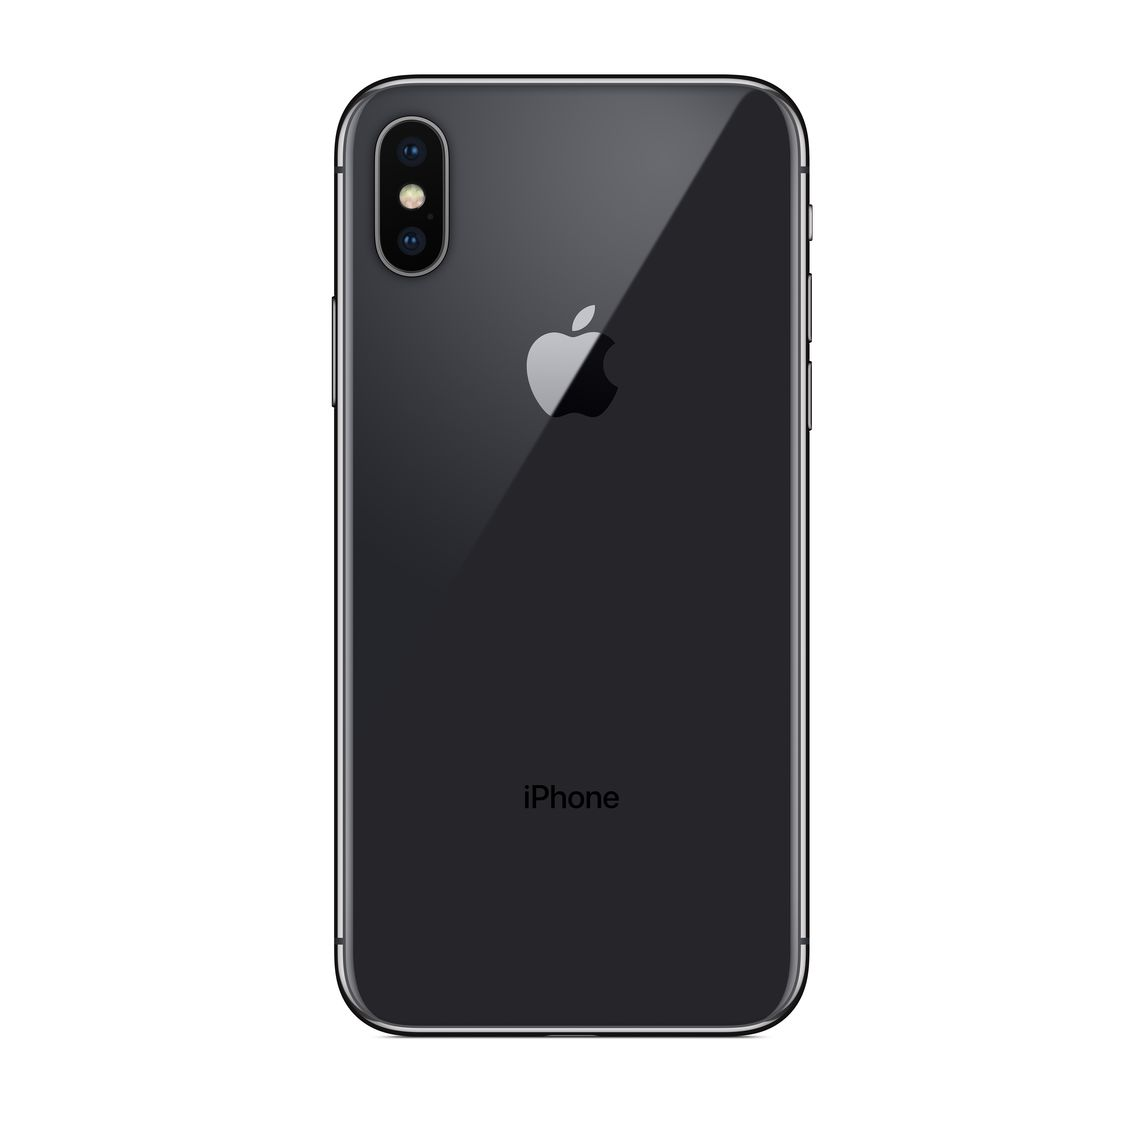 Refurbished iPhone X 64GB - Space Gray (Unlocked) - Apple